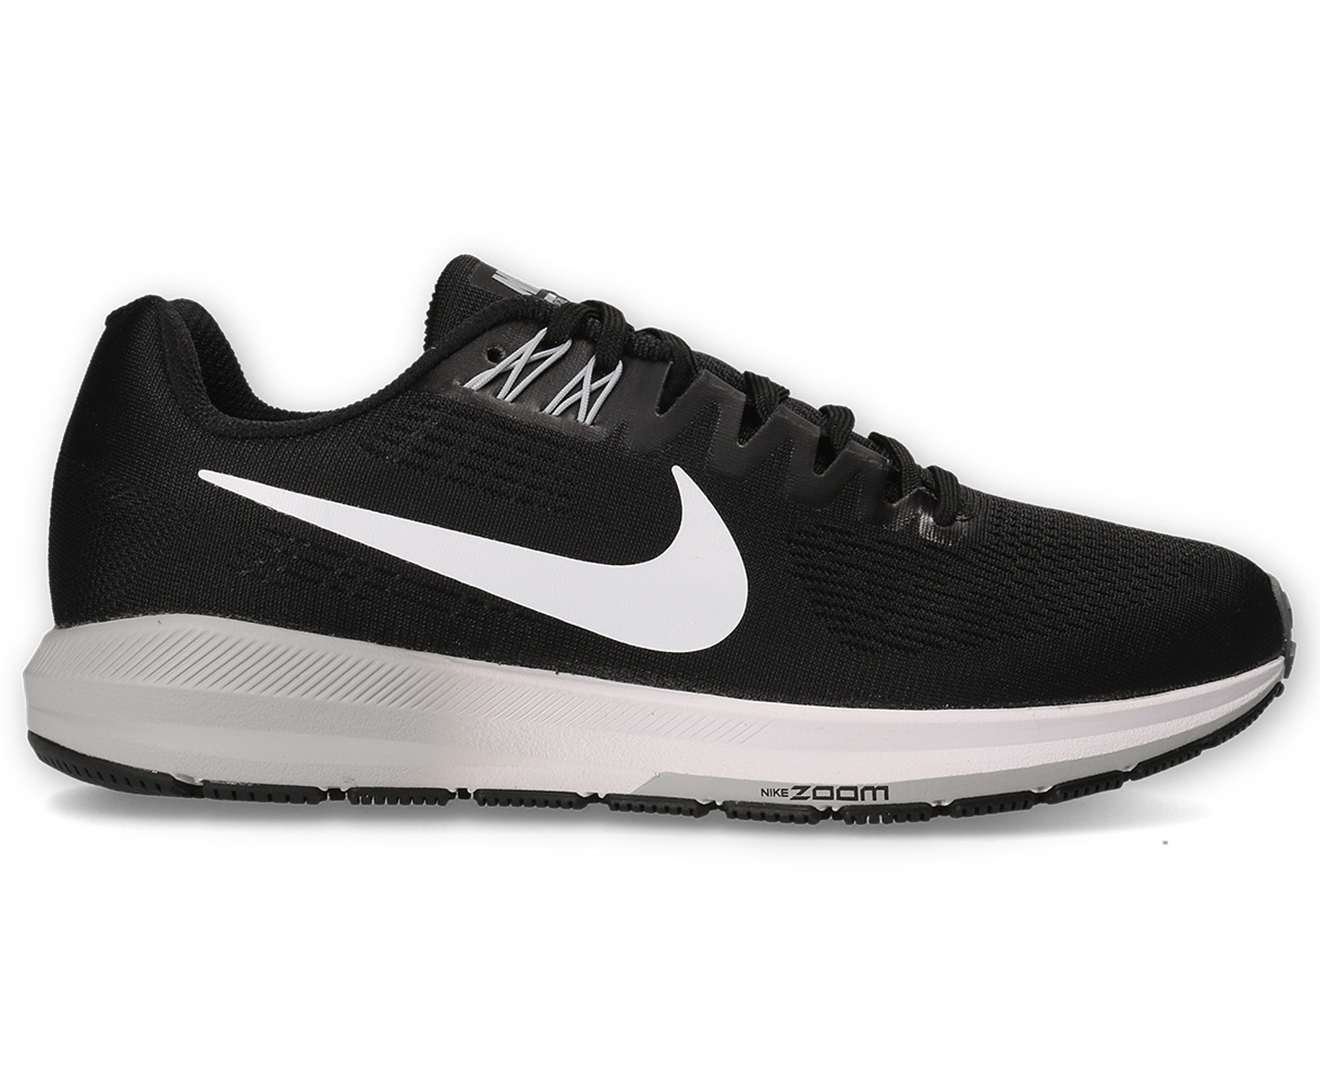 6cac7760d68d Nike Men s Air Zoom Structure 21 Shoe - Black White-Wolf Grey ...